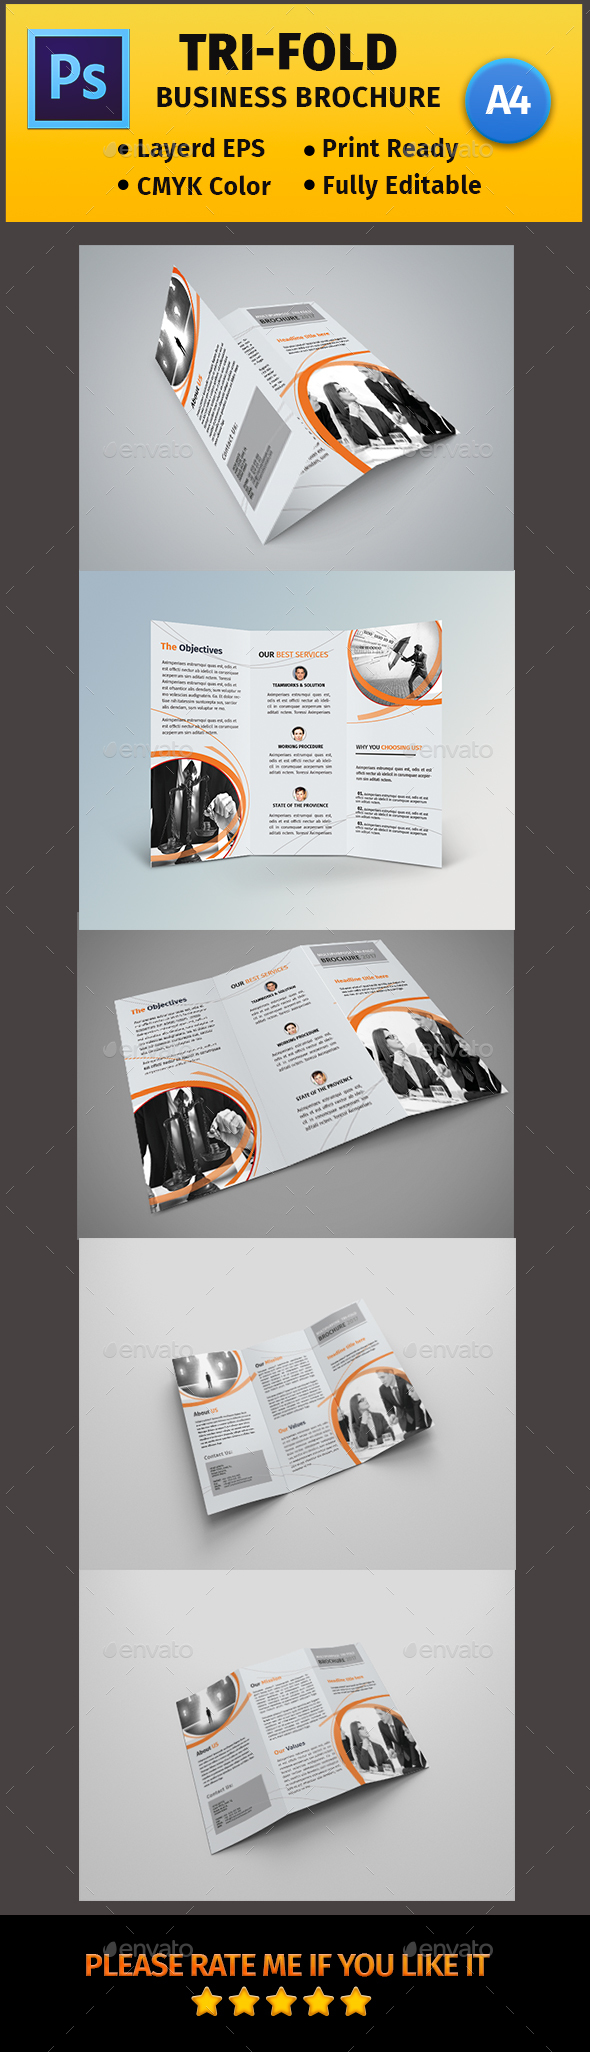 A4 Corporate Business Flyer #05 - Corporate Brochures